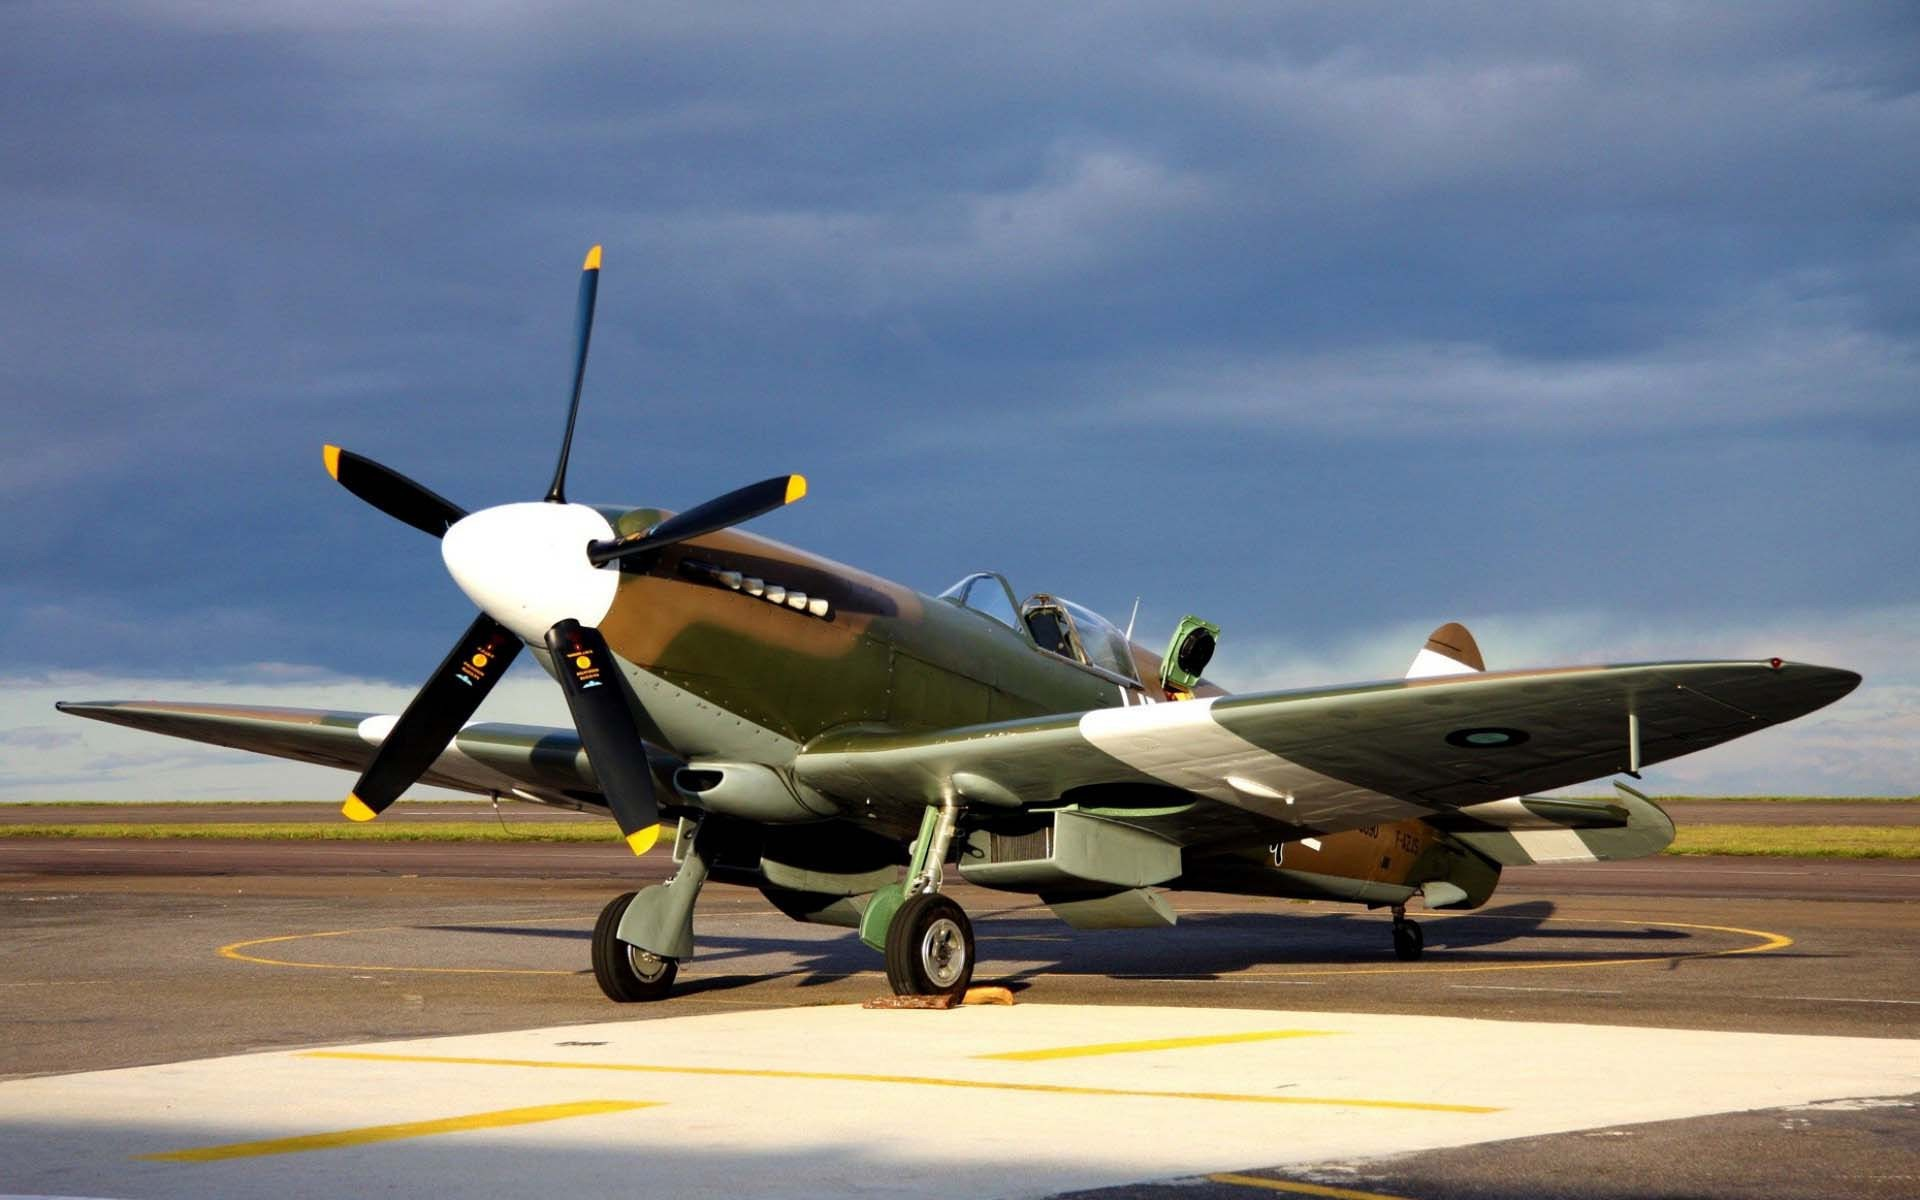 Vintage Airplane HD Photo Wallpapers 5985   Amazing Wallpaperz 1920x1200